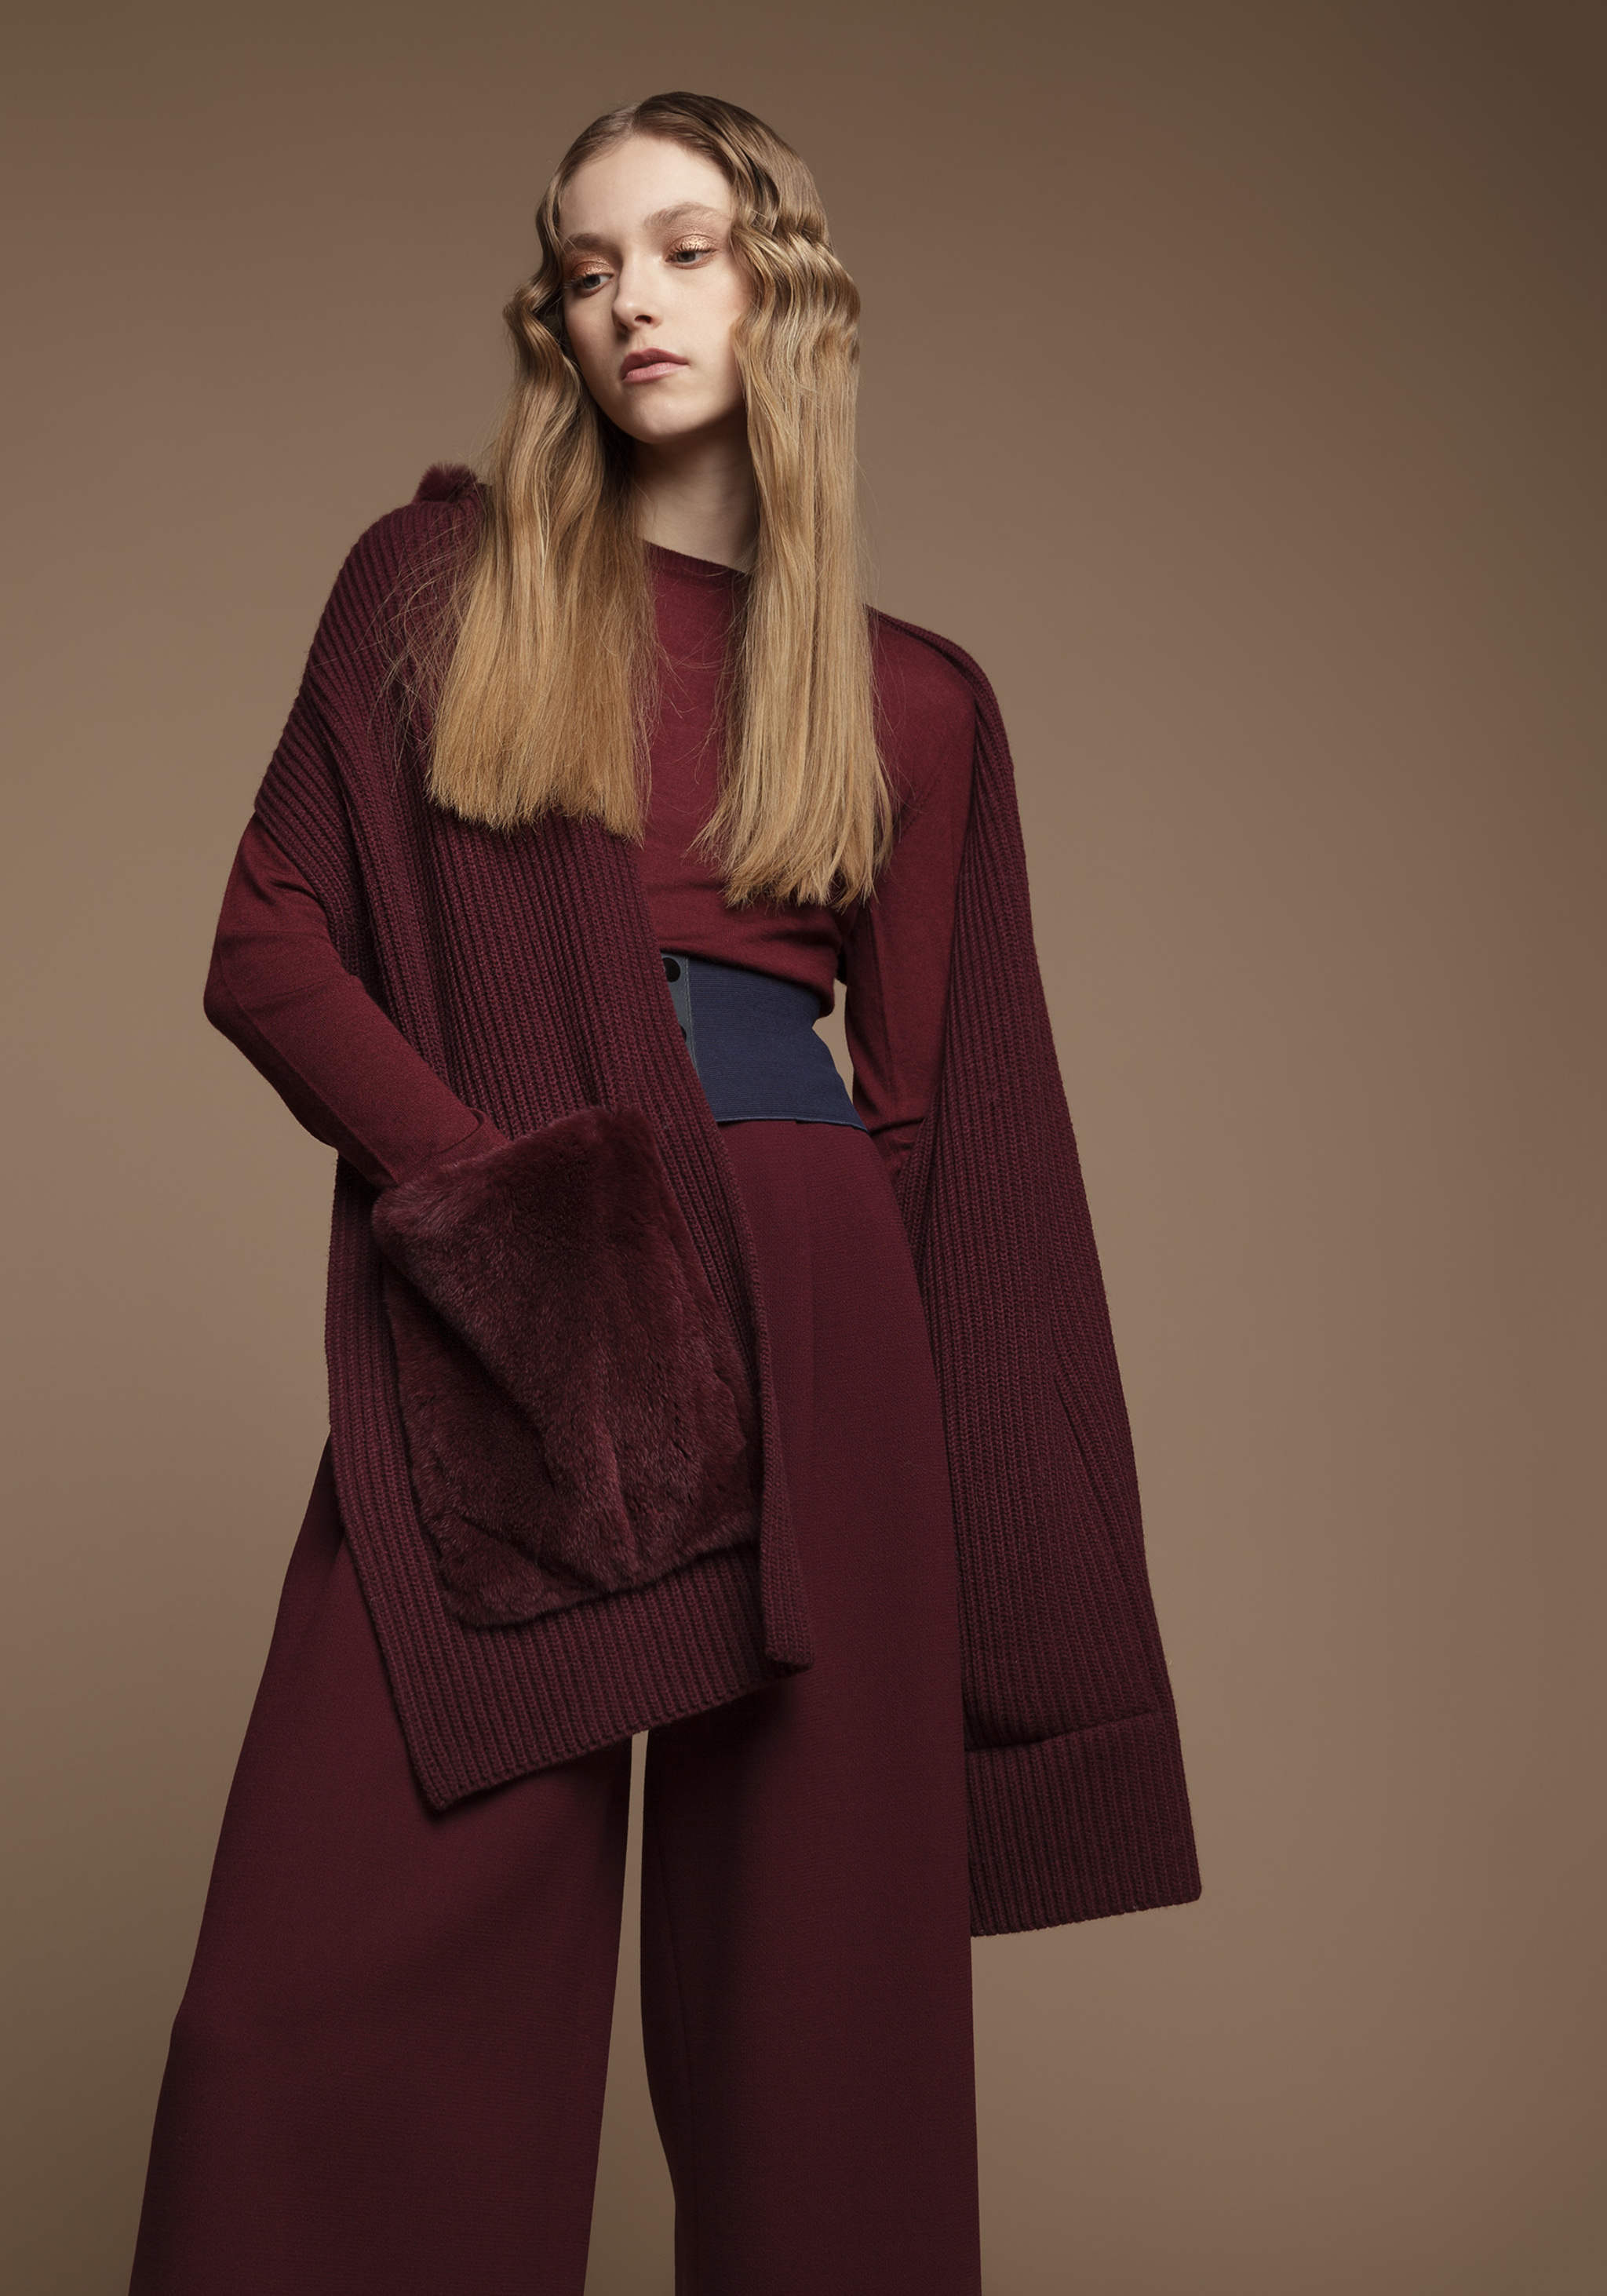 martacucciniello fallwinter-17/18 look20